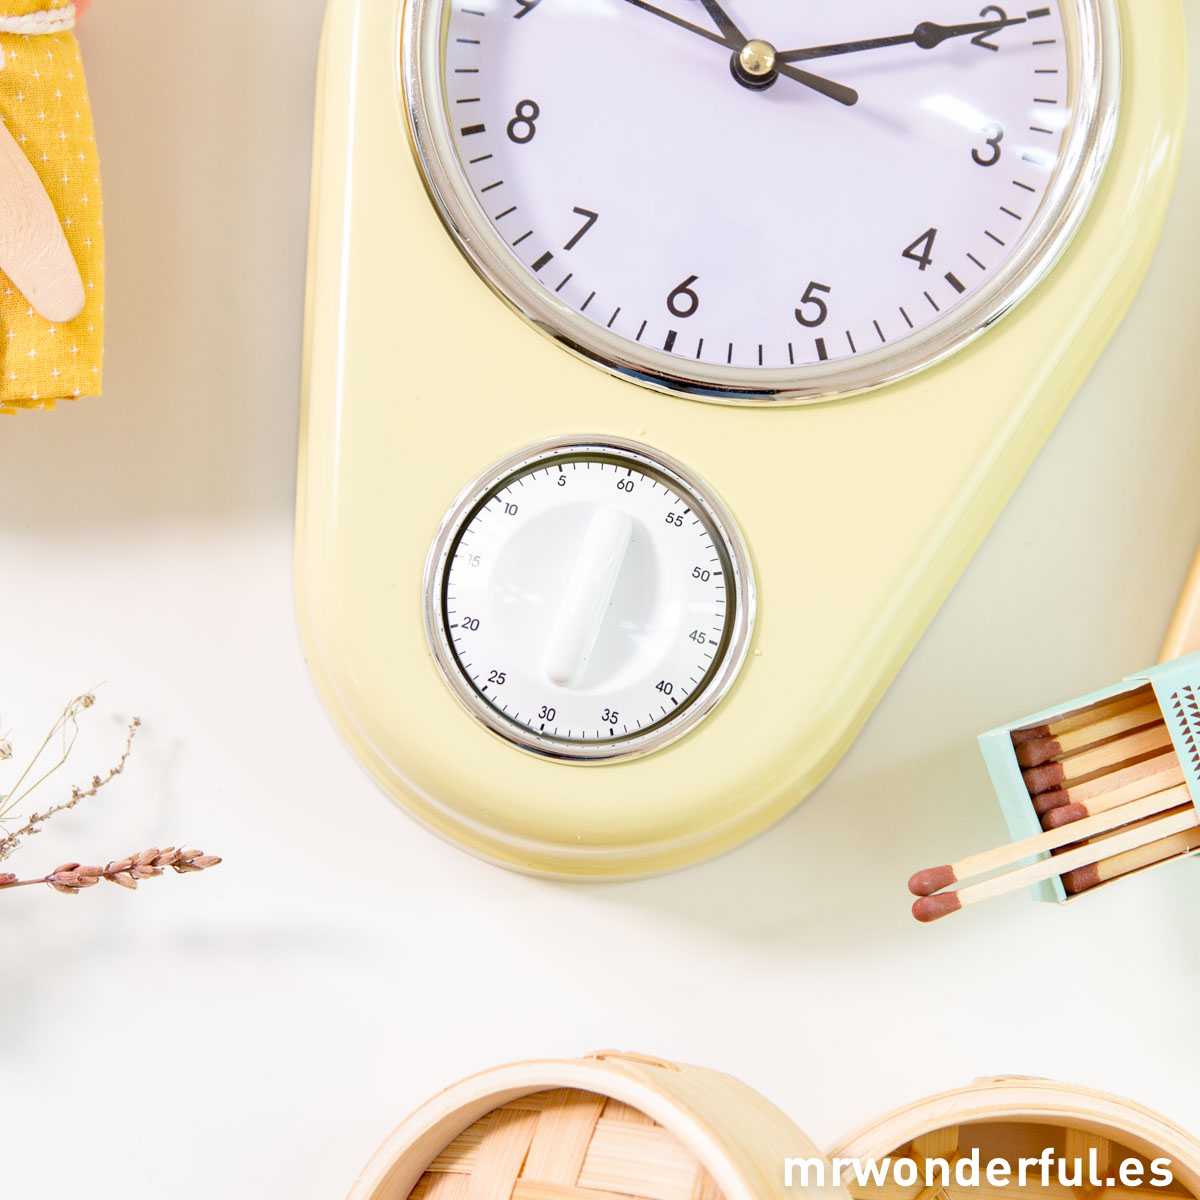 Mr.Wonderful reloj de cocina amarillo con temporizador